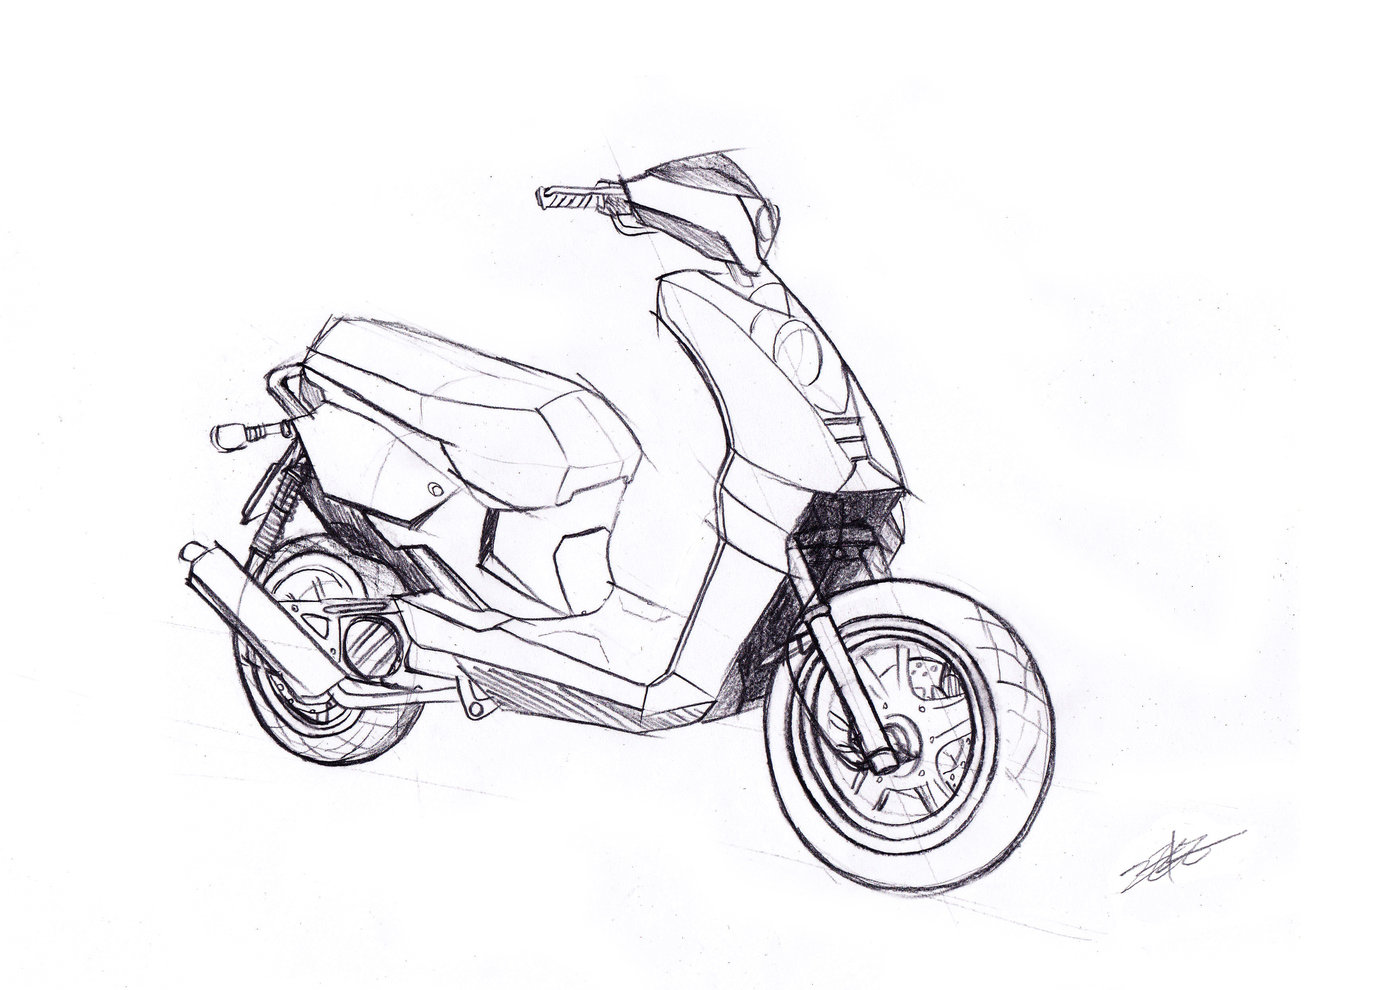 motorcycle sketch images  Motorcycle sketch and 2D rendering by Minghsien Wu at Coroflot.com